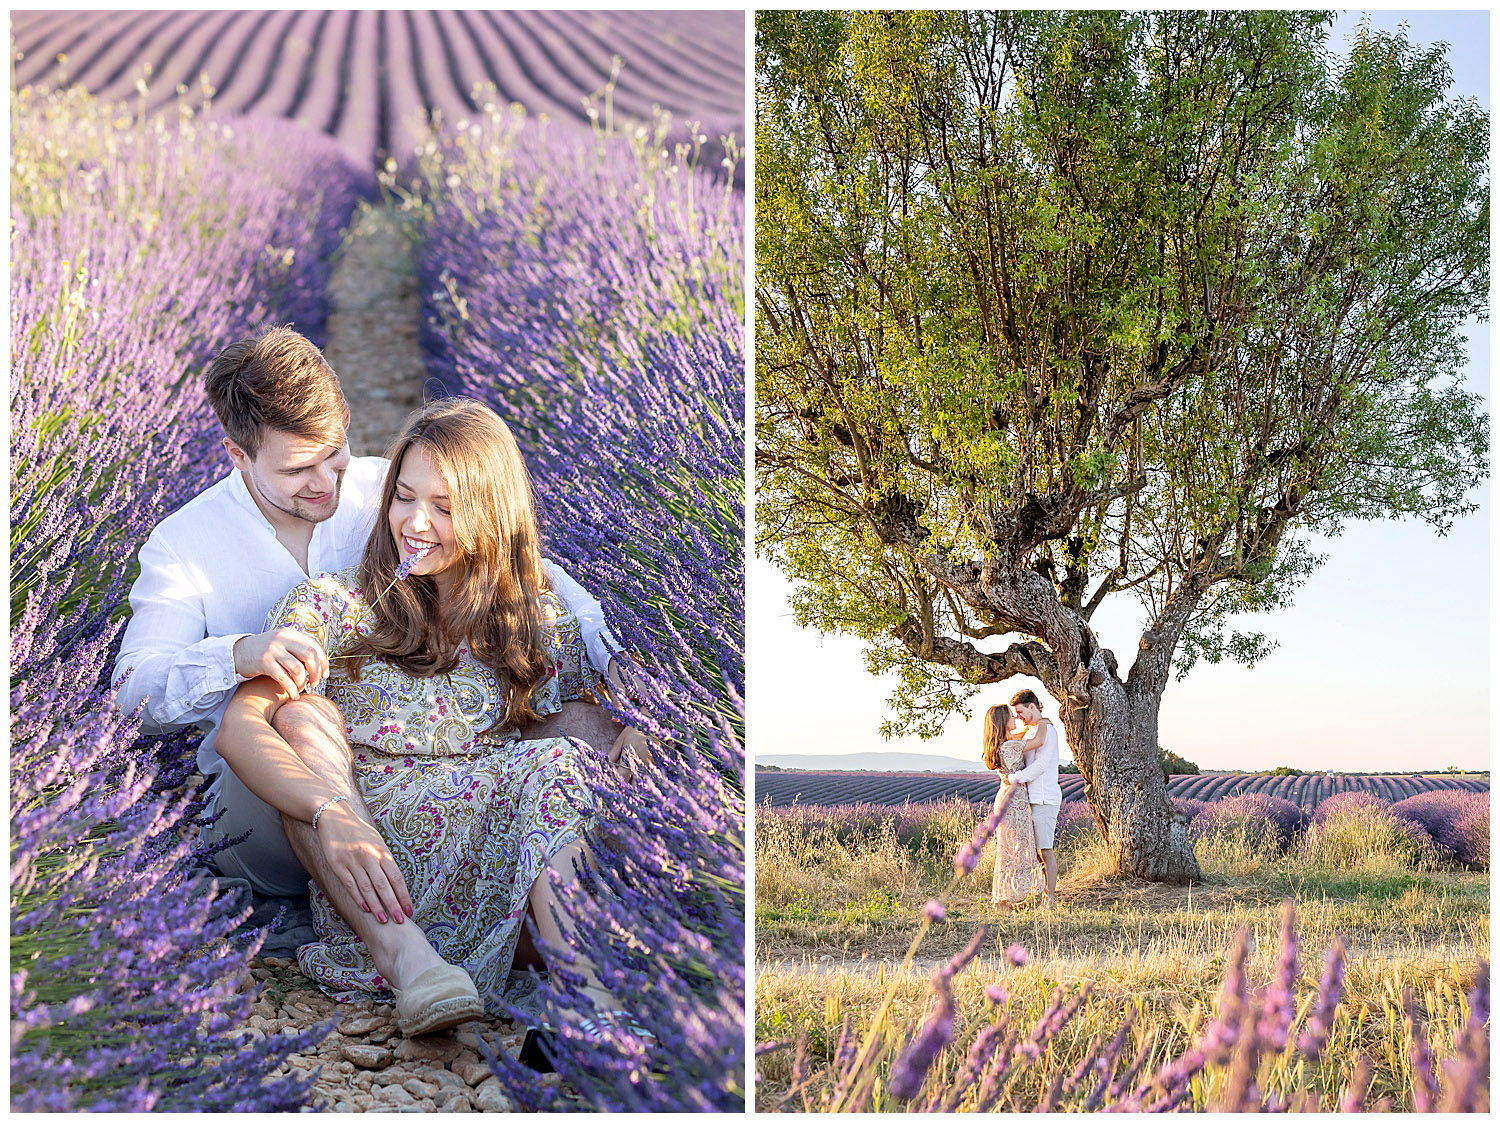 Marie-Calfopoulos-photographer-Provence-Luberon-Sault-Valensole-lavender-fields-photo-session